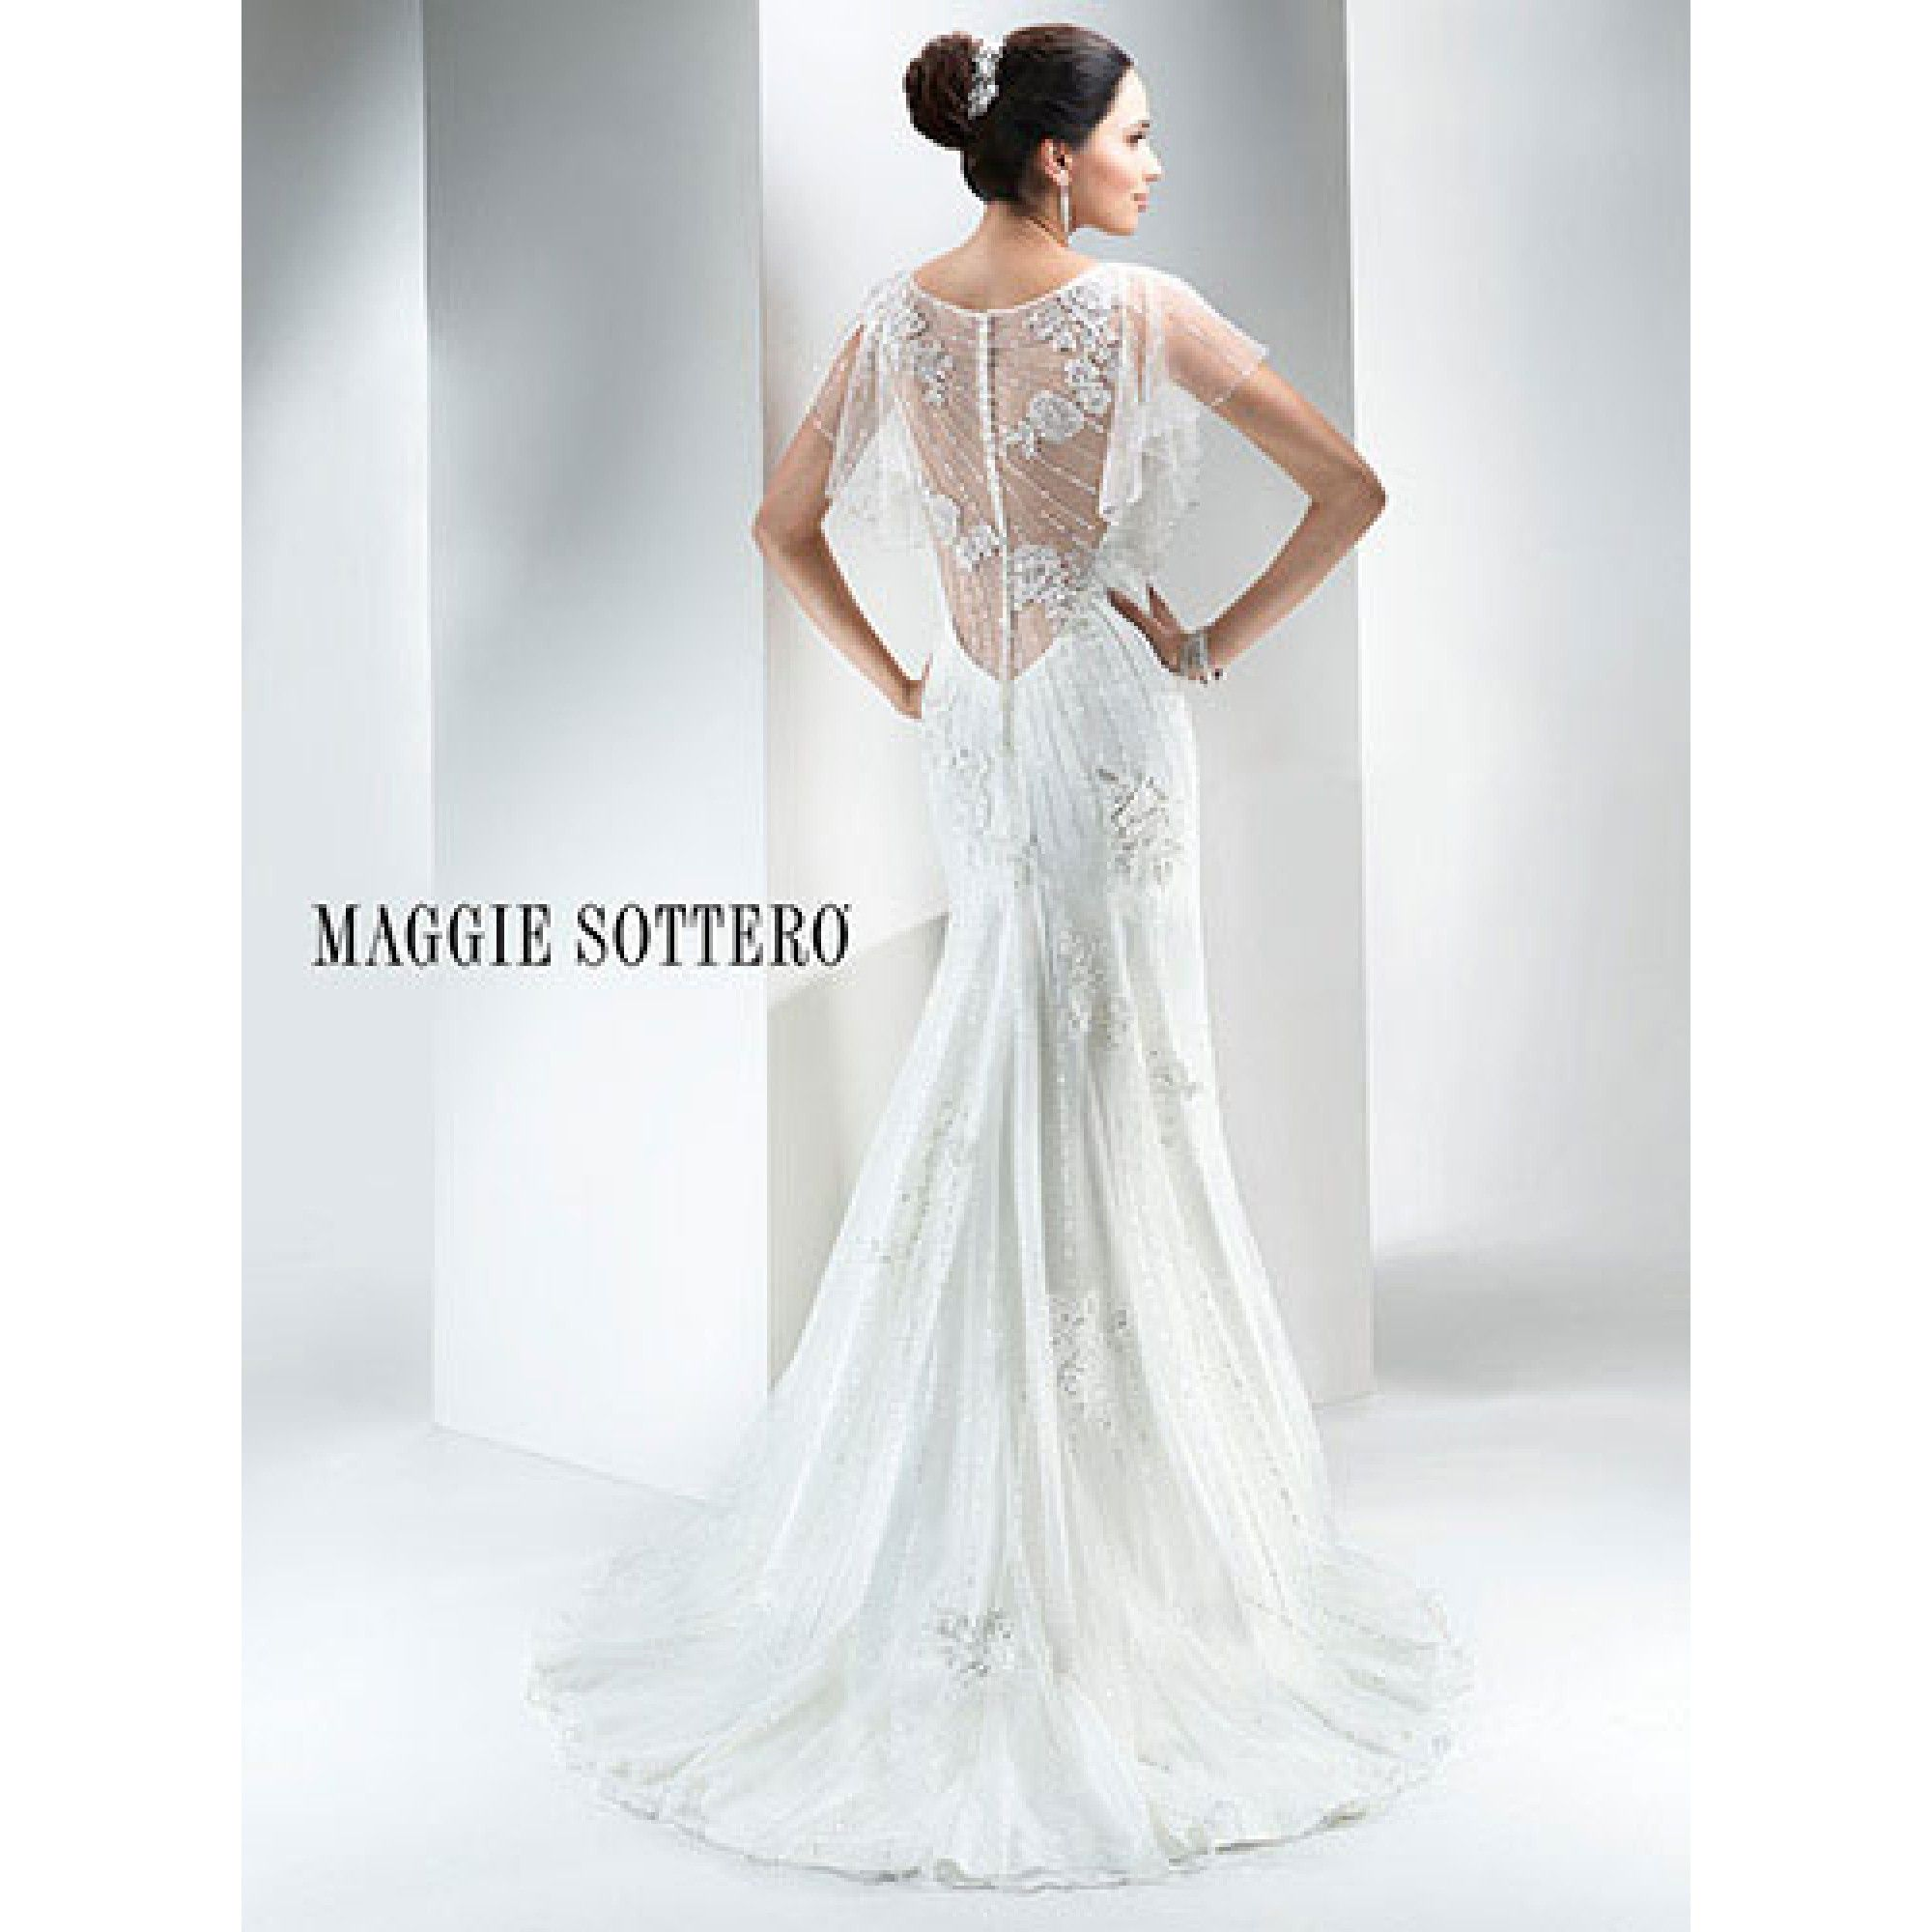 Maggie Sottero Eileen|Maggie Sottero Wedding dress Eileen ...